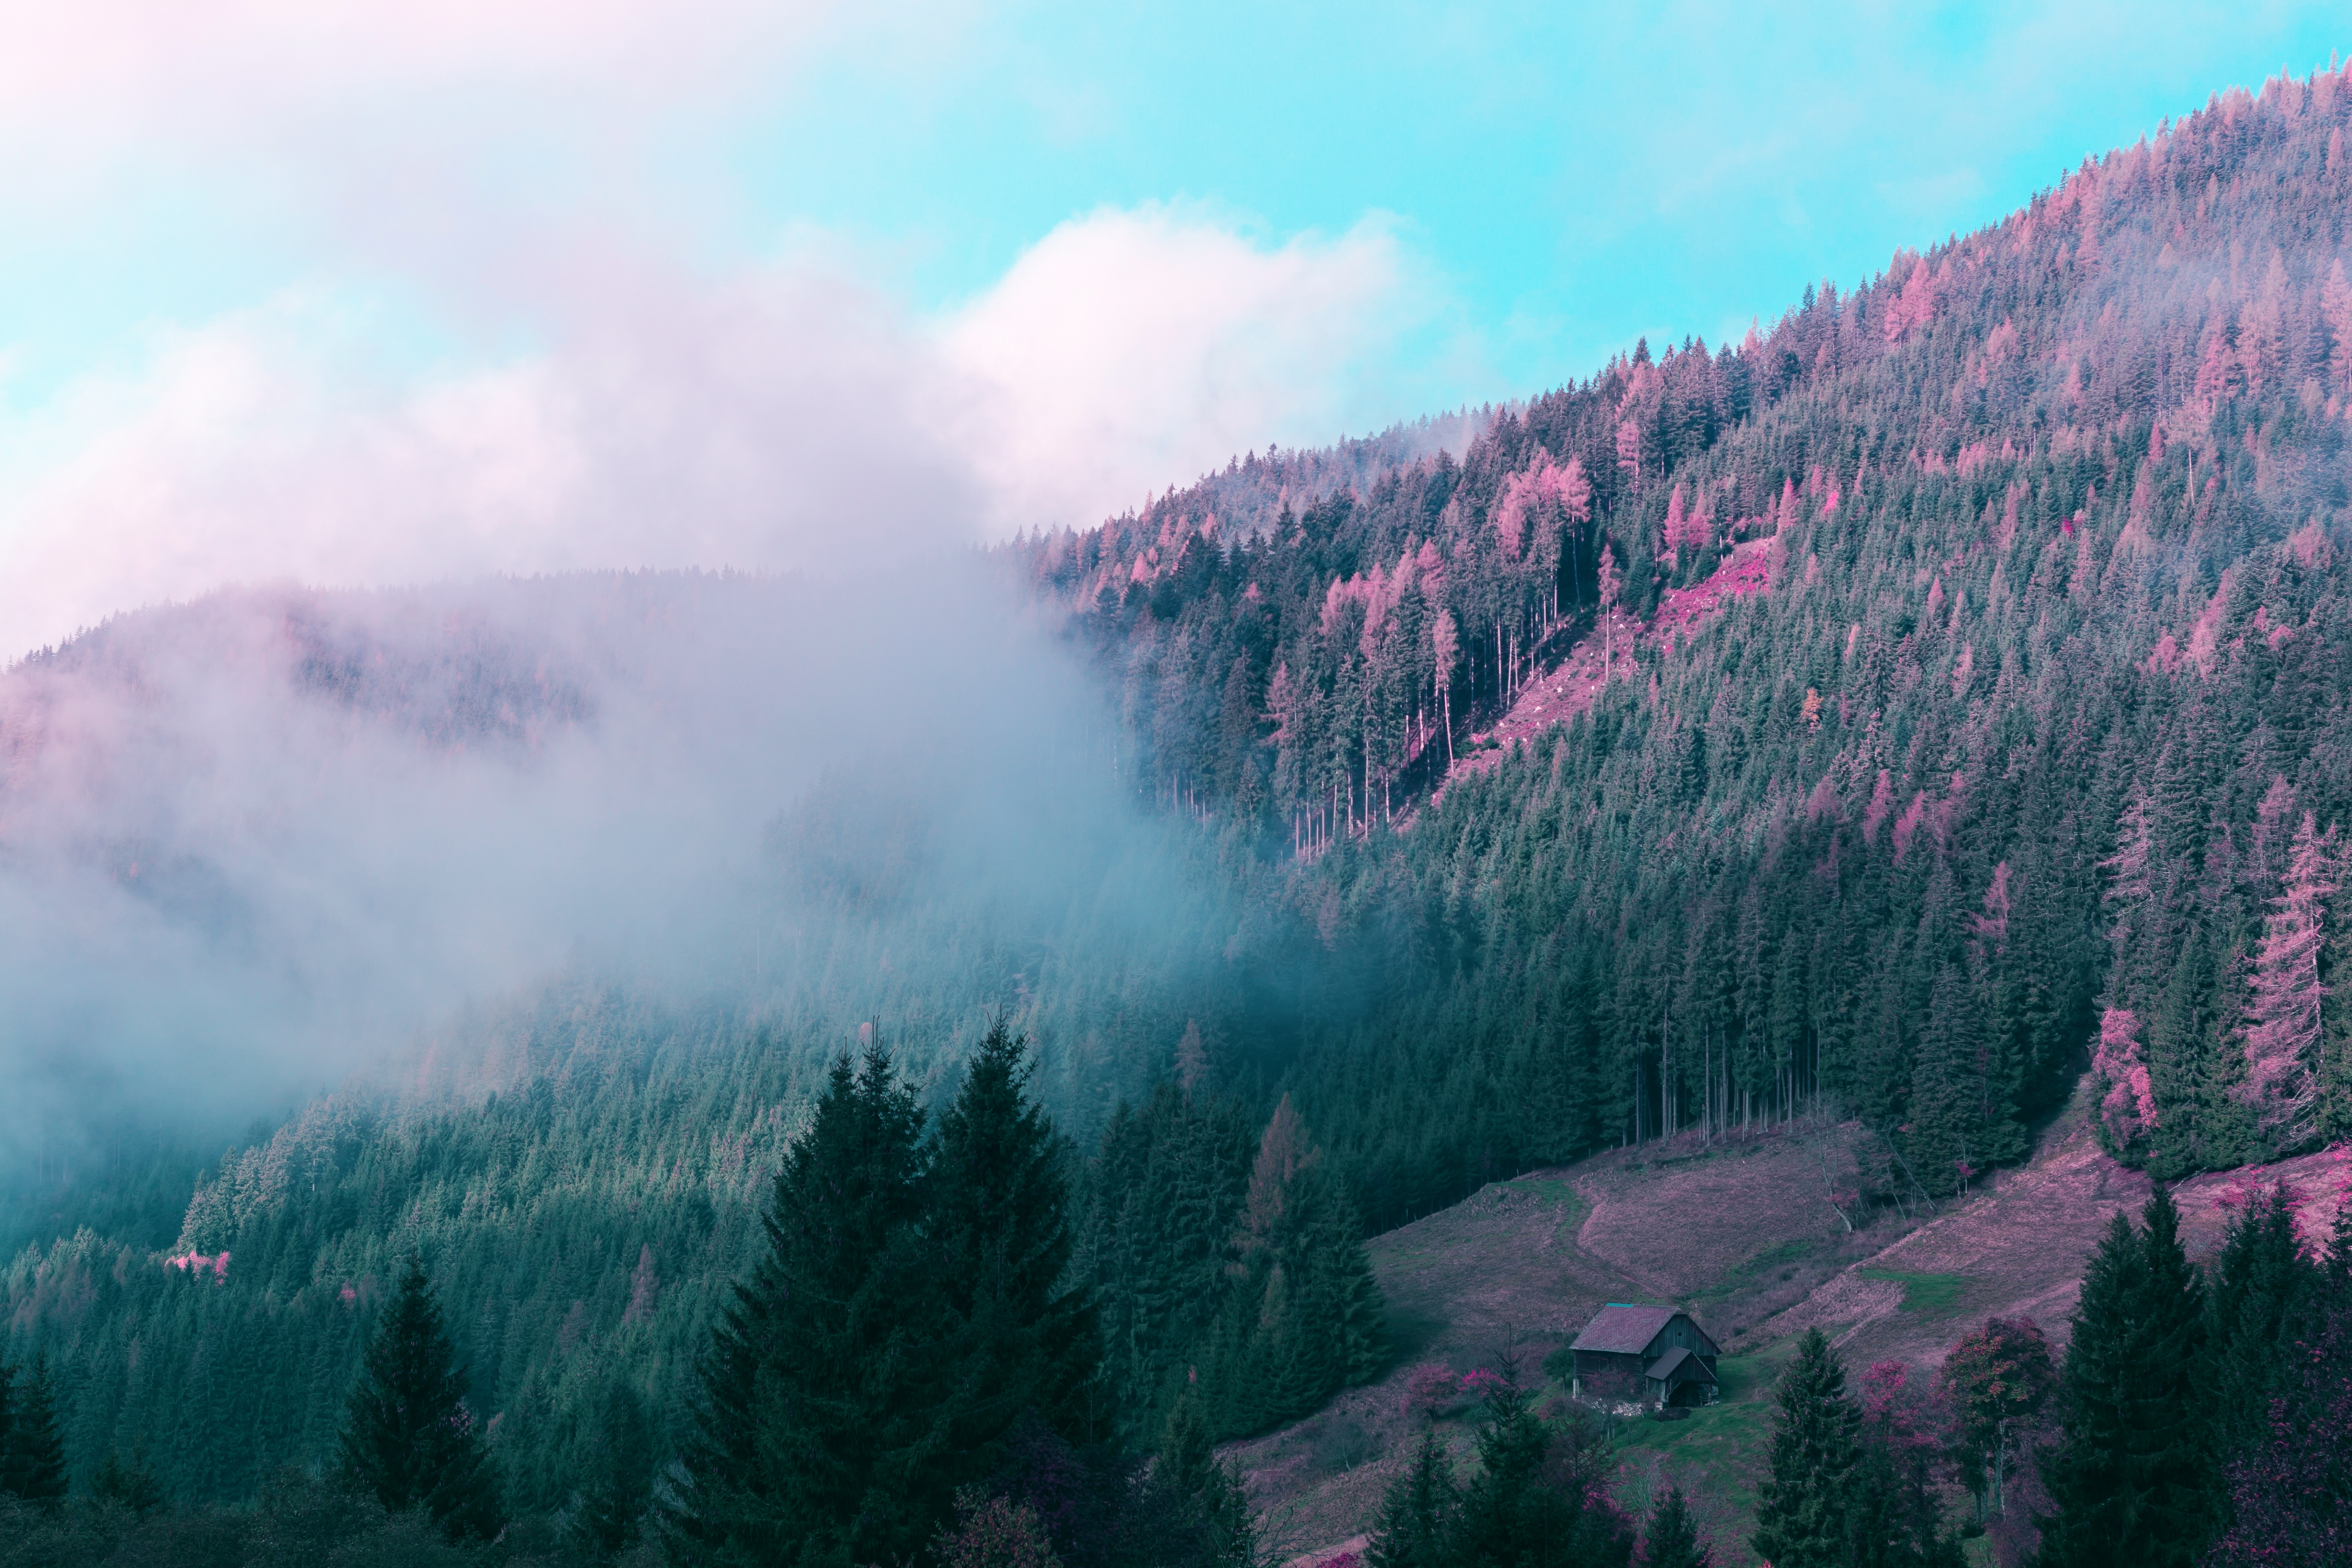 51733 download wallpaper Nature, Trees, Mountains, Fog, Austria, Small House, Lodge, Elevation, Gezouse National Park, Admont, Gesoise National Park screensavers and pictures for free